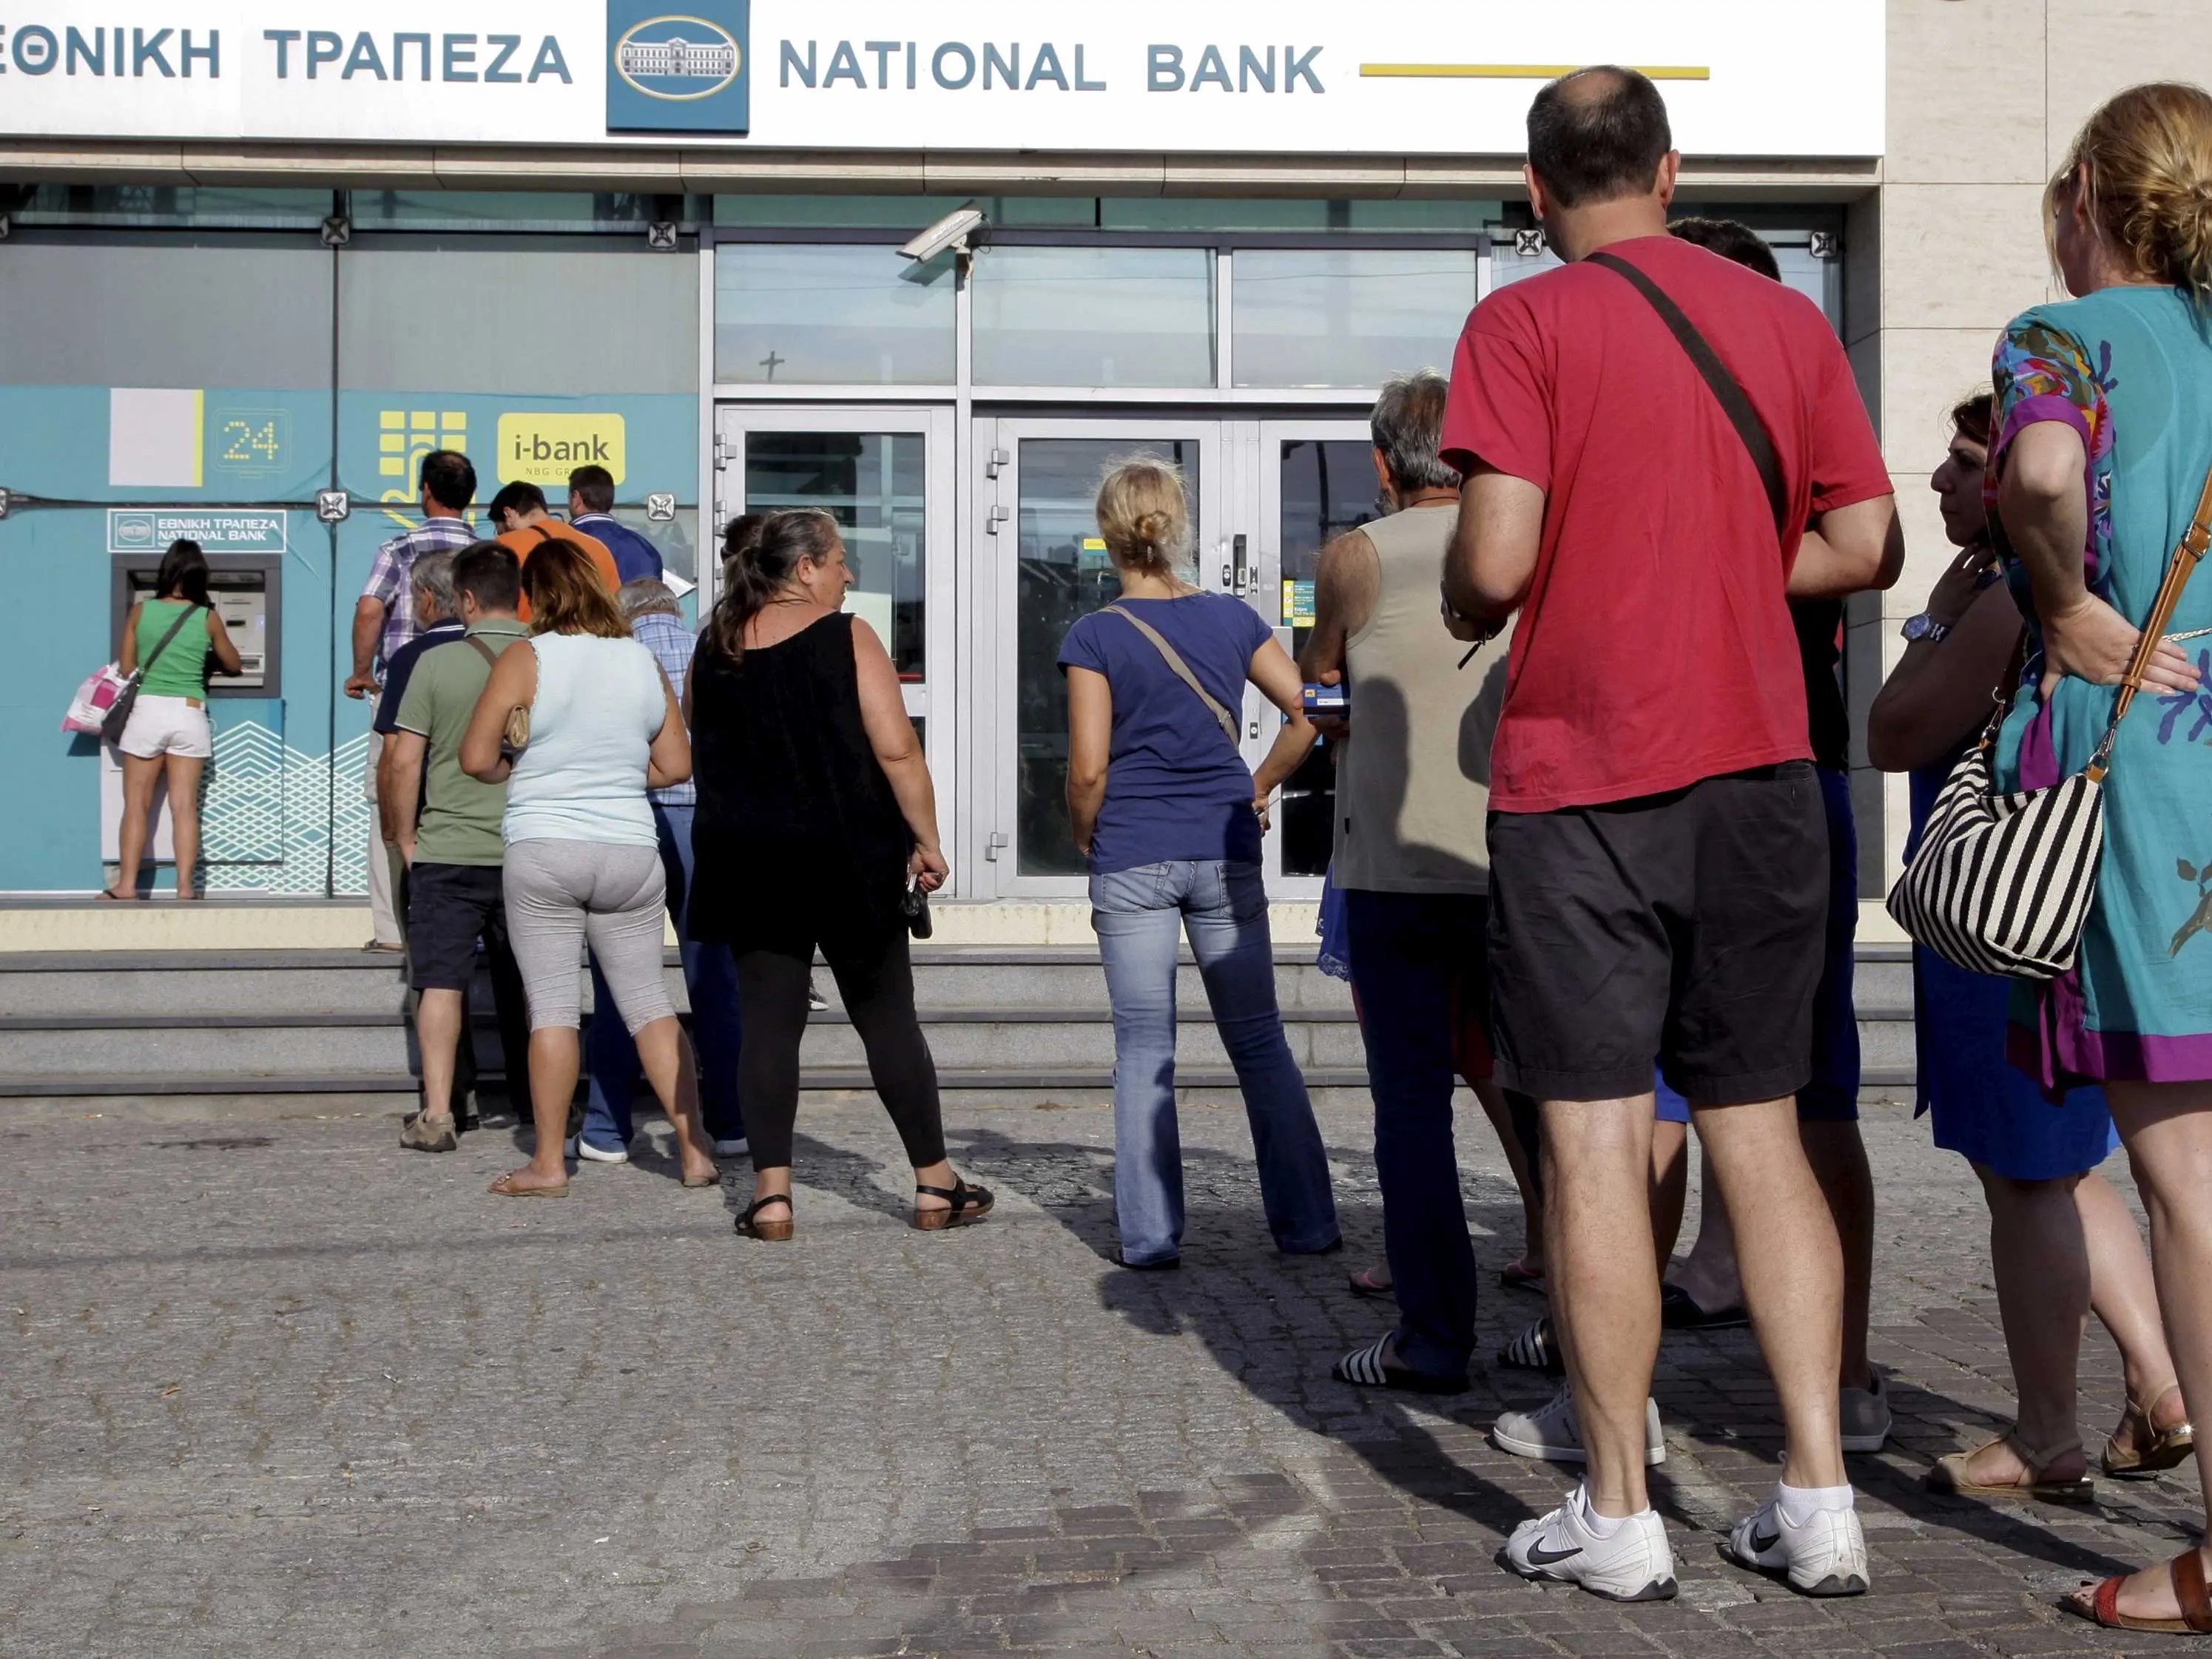 greek greece bank atm line queue